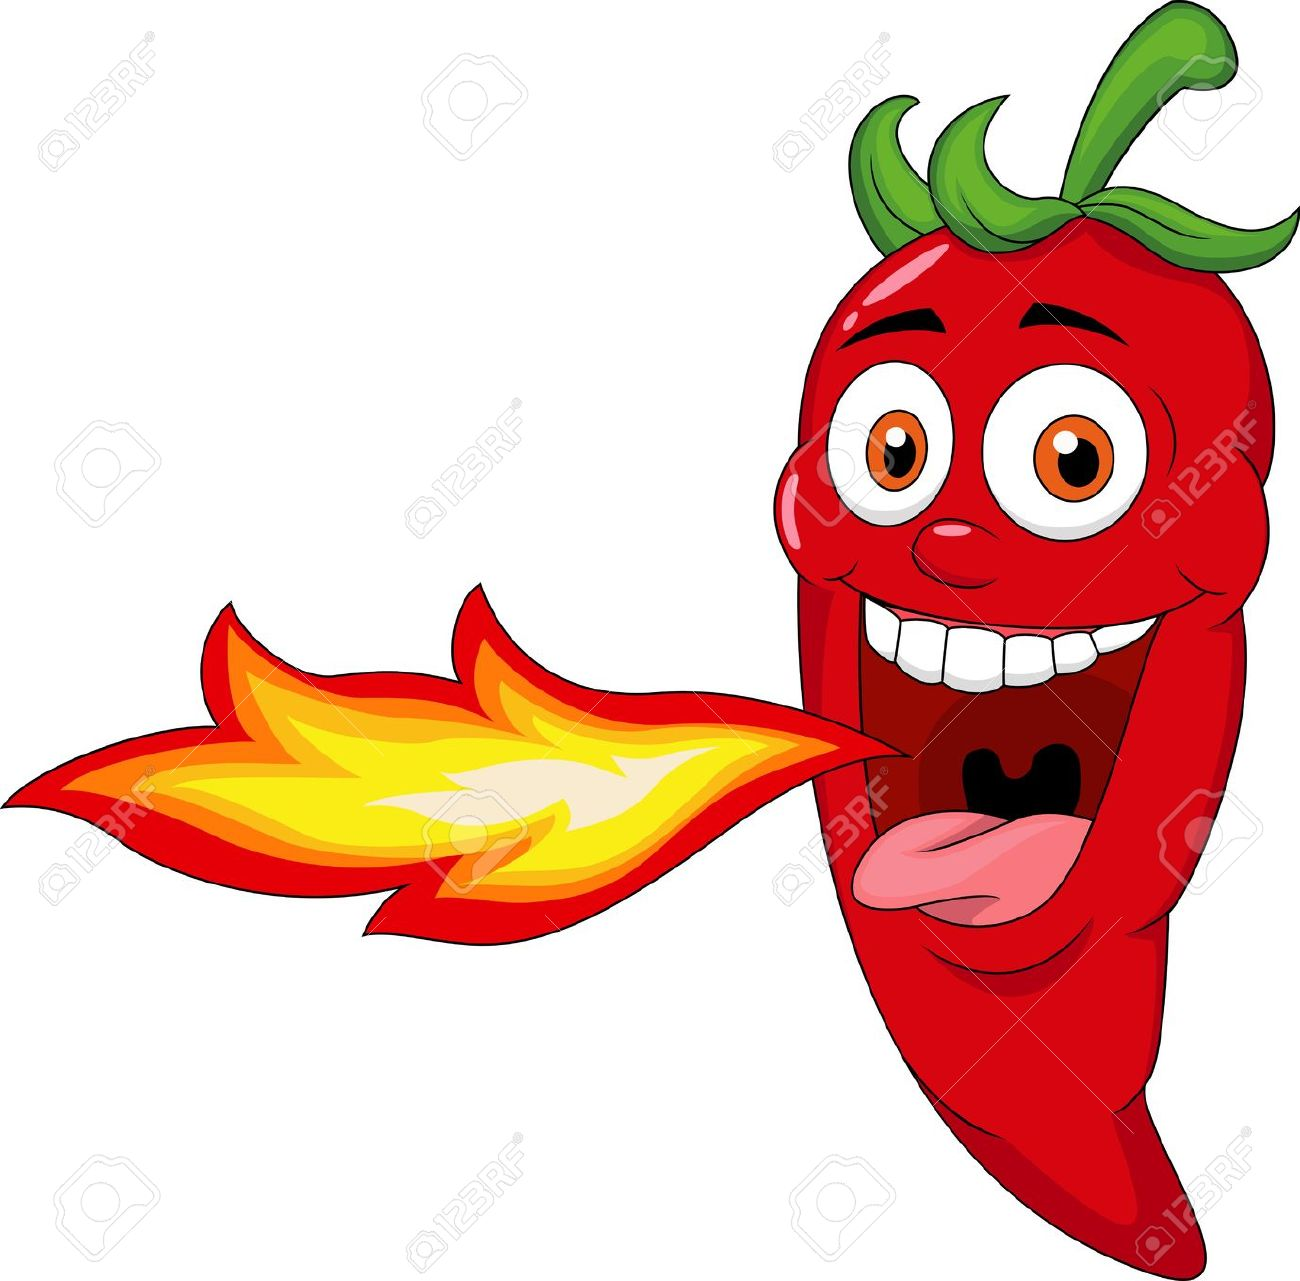 Chili Cartoon Character Breathing Fire Royalty Free Cliparts.